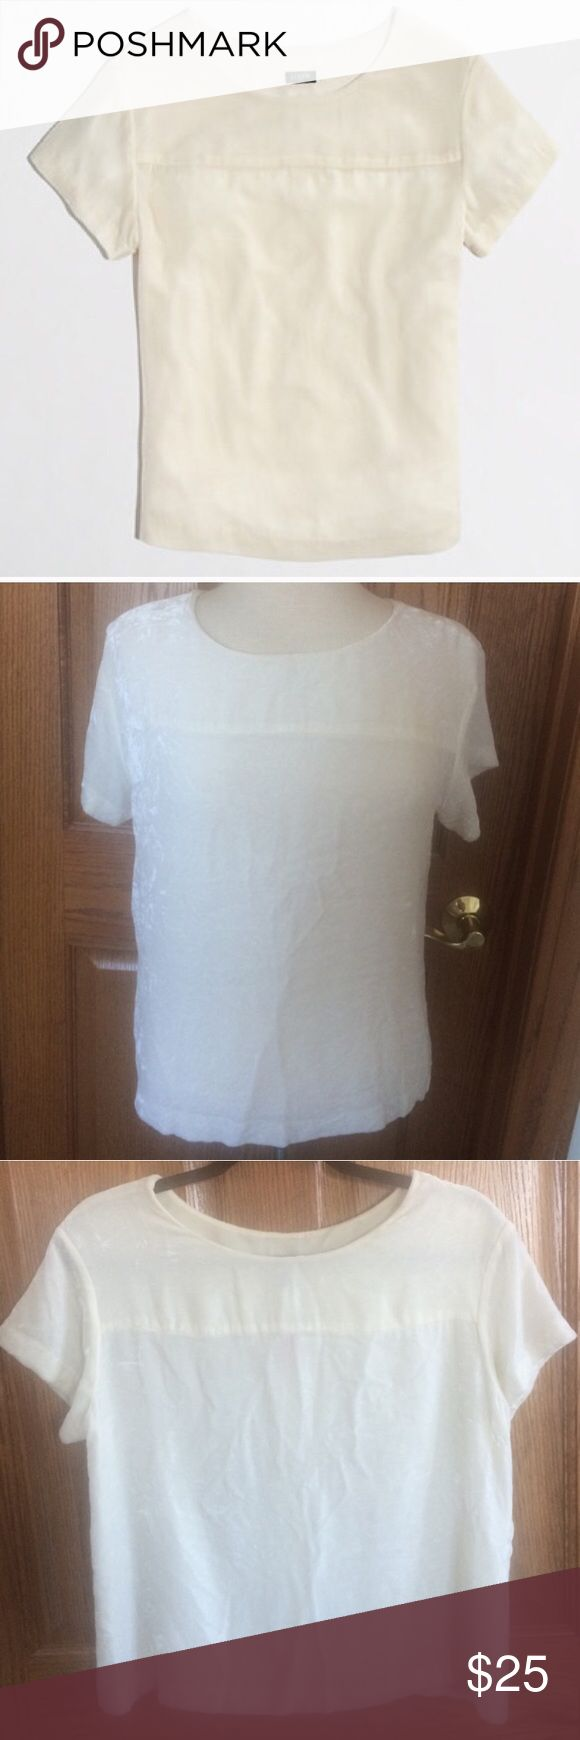 🎉J.Crew Velvet Tee Shirt Cream White Loose Small 🎉SALE J.Crew Velvet Tee Shirt Size Small White Cream Color Soft Loose fit Short sleeves Rayon/Silk  Our designers' newest take on velvet is as wardrobe friendly as is plush. Crafted in easy-to-wear tee shape, always-festive velvet hits all the right notes, whether you're dressing for day (we're loving it with jeans) or an evening In very good condition                                    Please ask any questions  💲Open To Offers💲 🚫No…